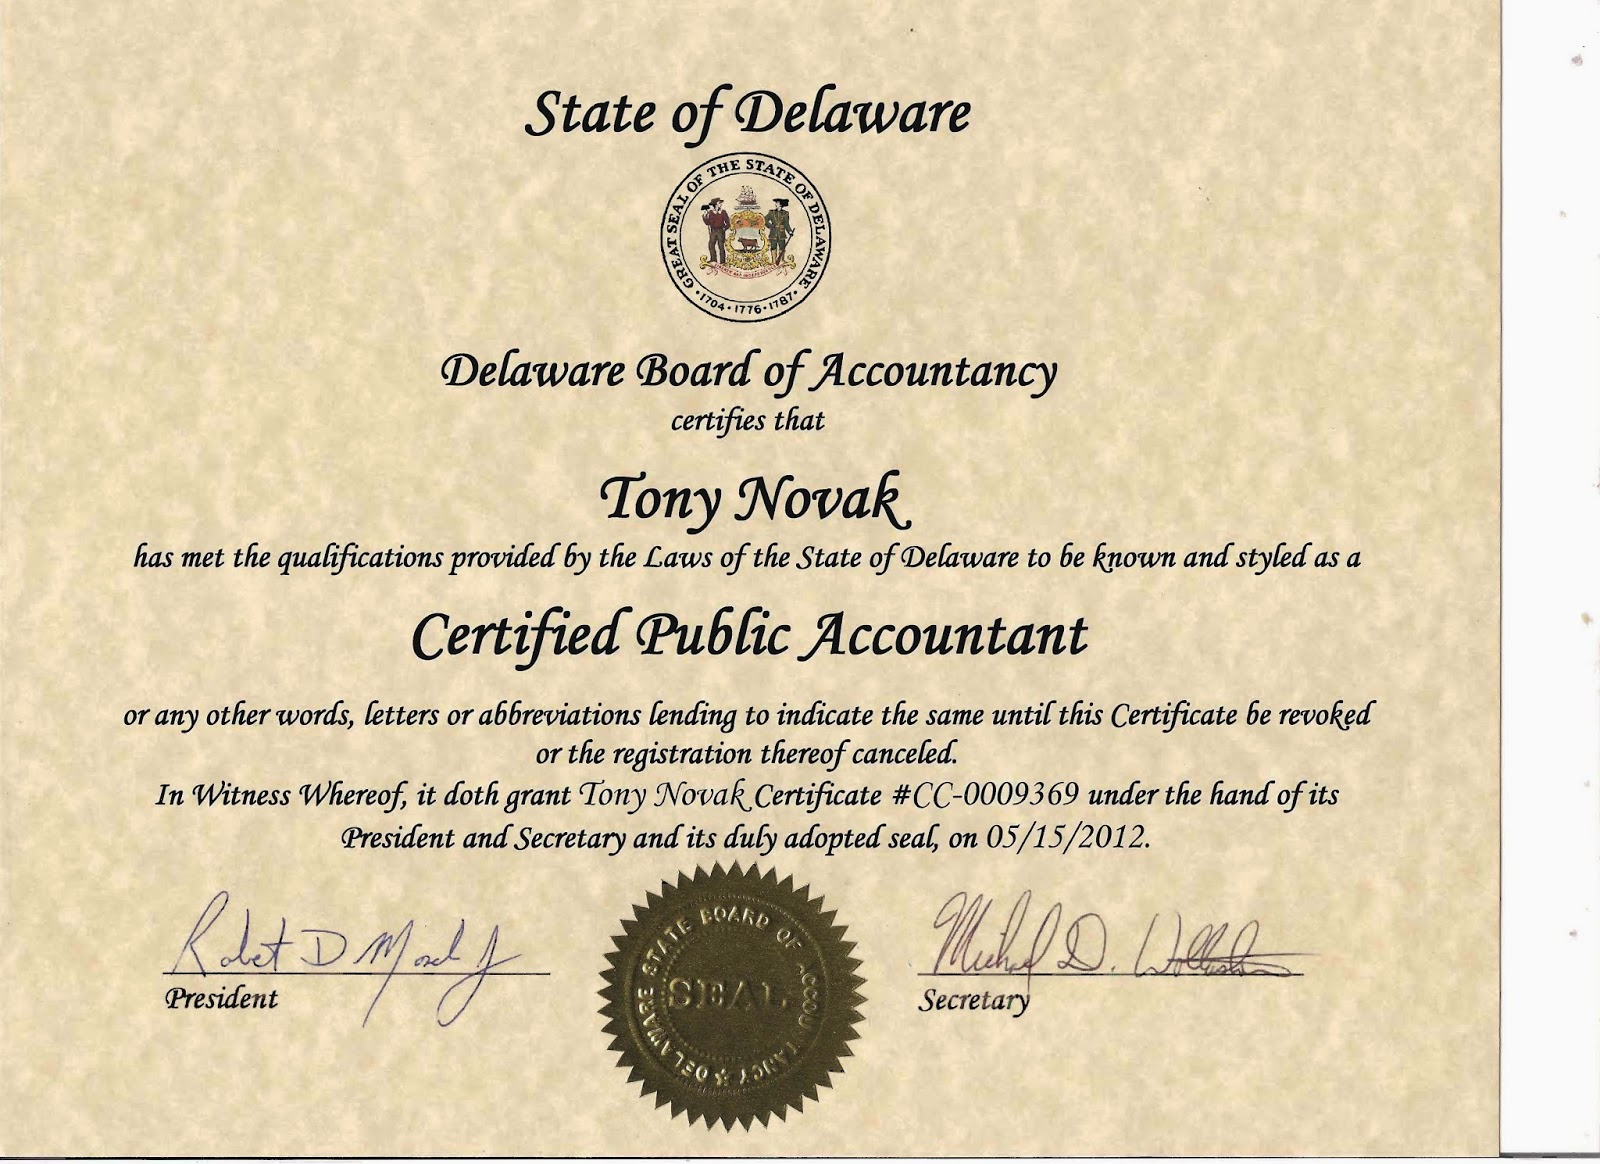 obtained cpa license in wisconsin Learn about the education, practical steps, and experience you'll need to become an accountant.